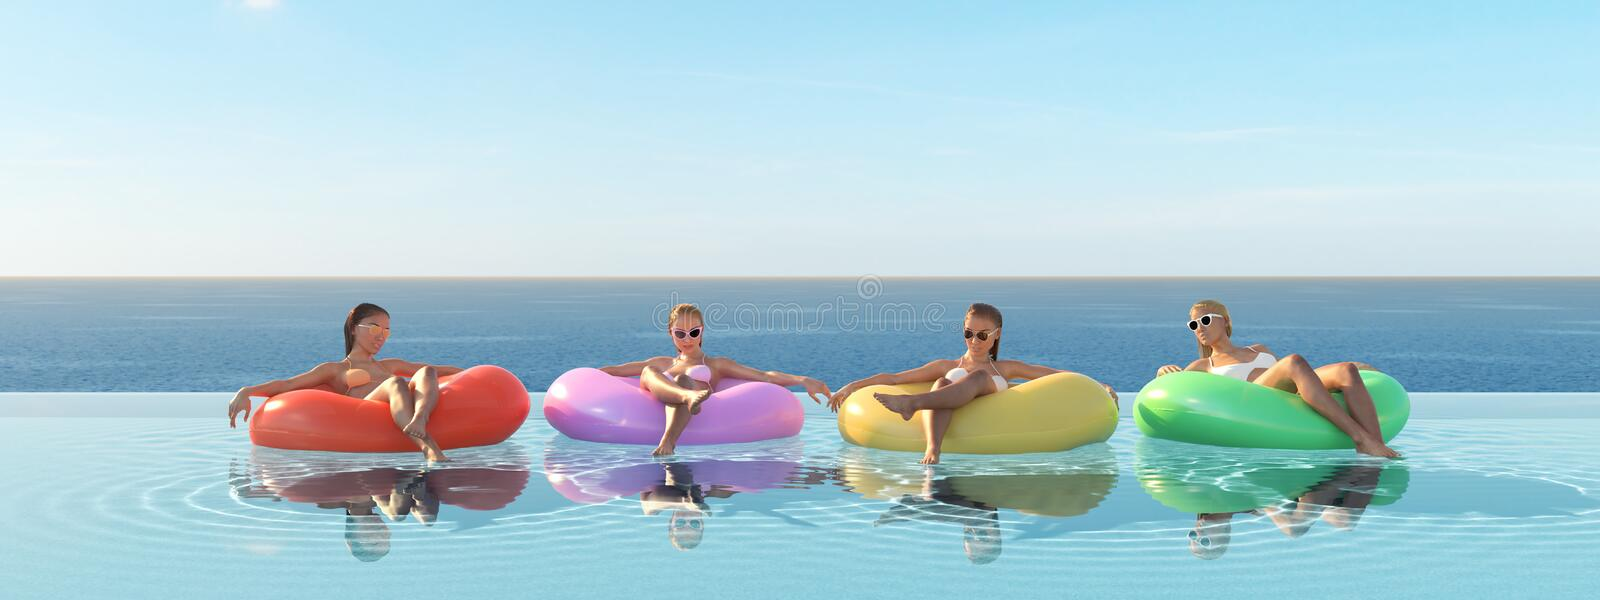 3D-Illustration of women swimming on float in a pool. royalty free illustration